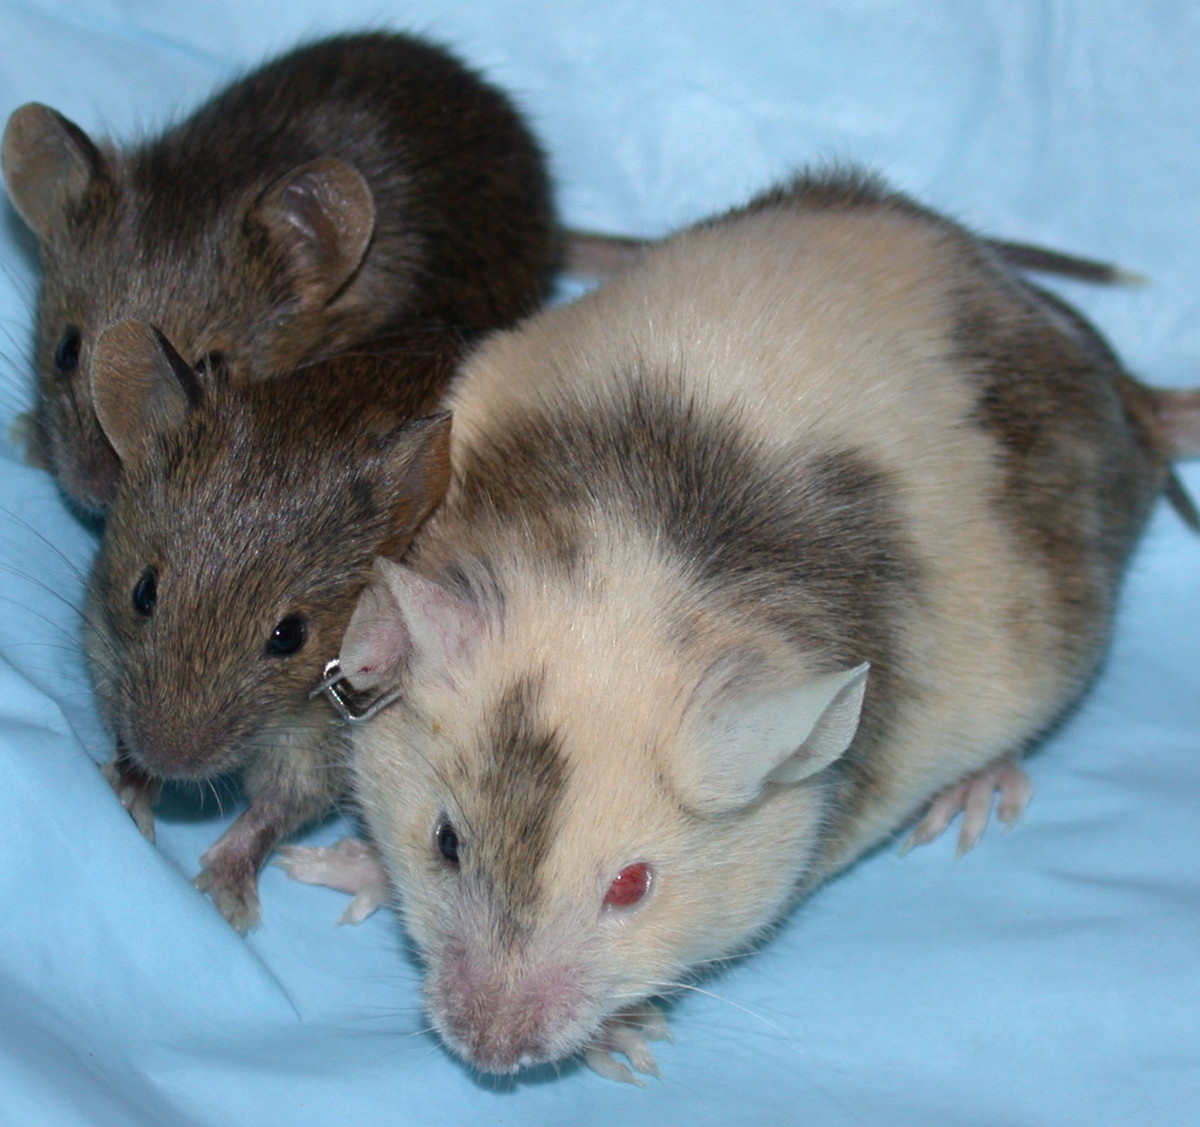 Chimeric mice are often used in laboratory research. The adult chimeric mouse is fertile, but her pups will only carry the genetic material found in her reproductive tract.